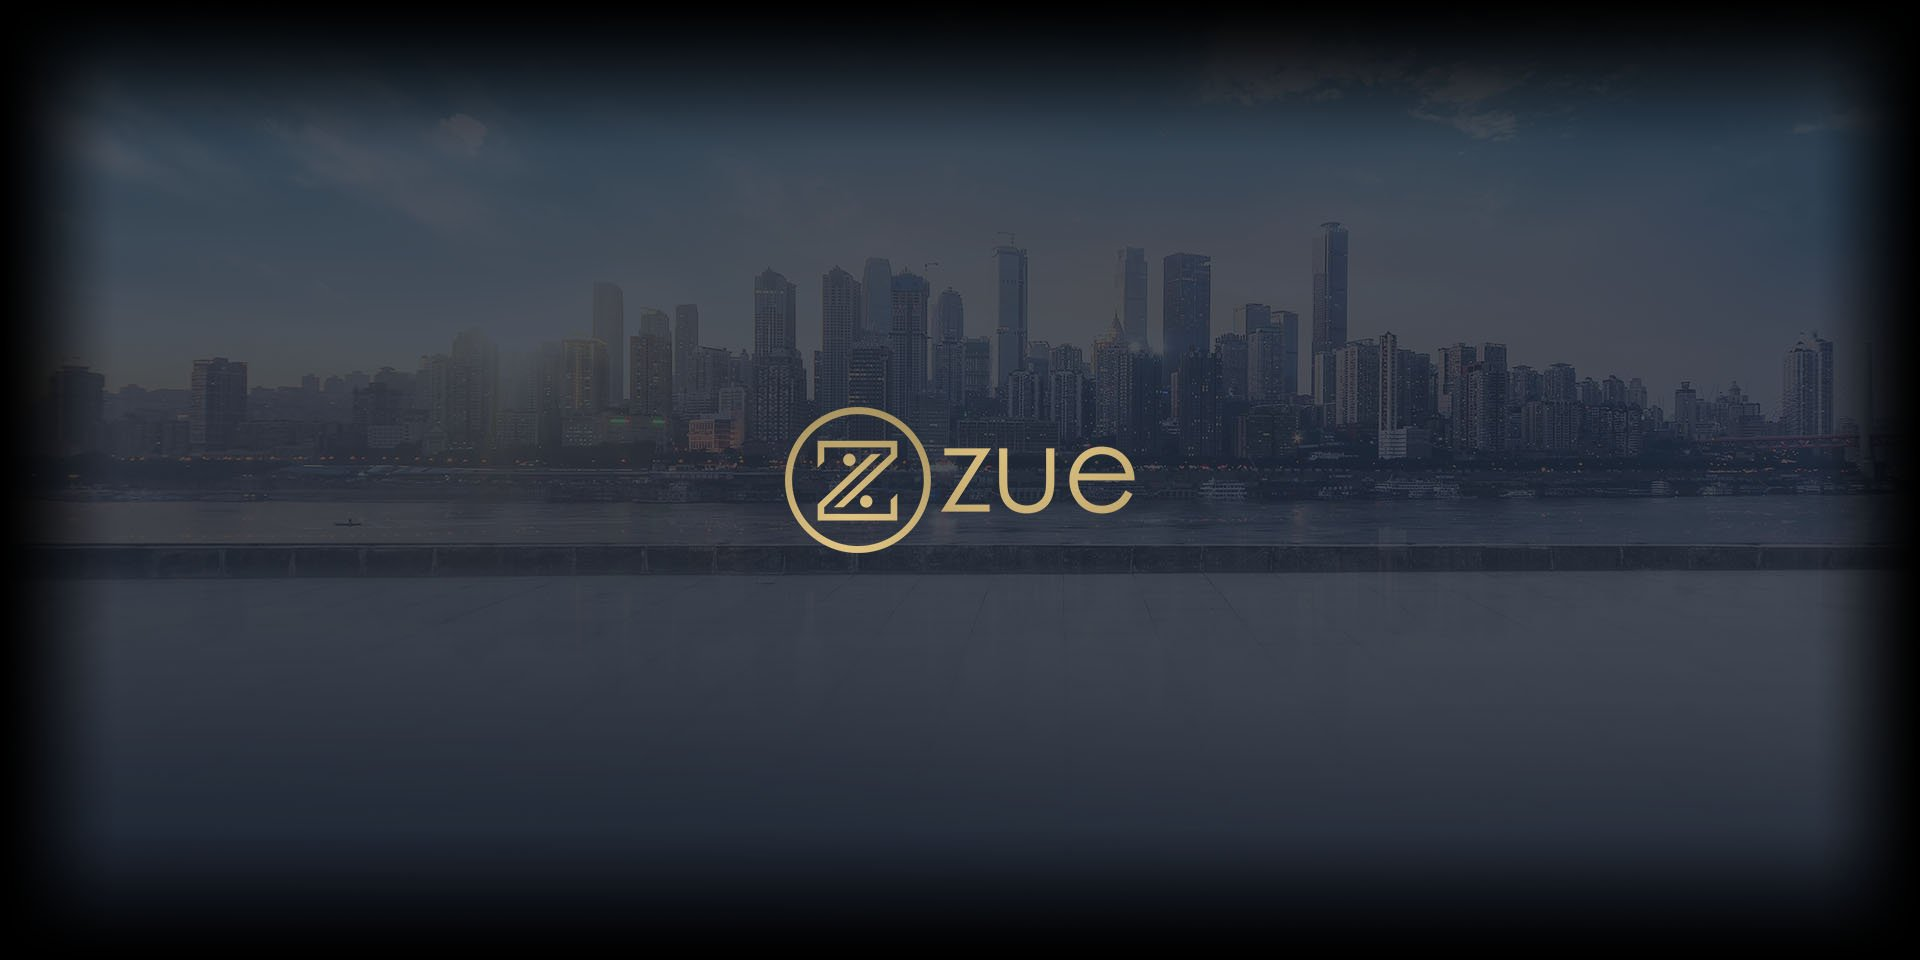 ZUEN Chain Launches ICO Backed By World's First TotalWellness Blockchain Alliance Platform